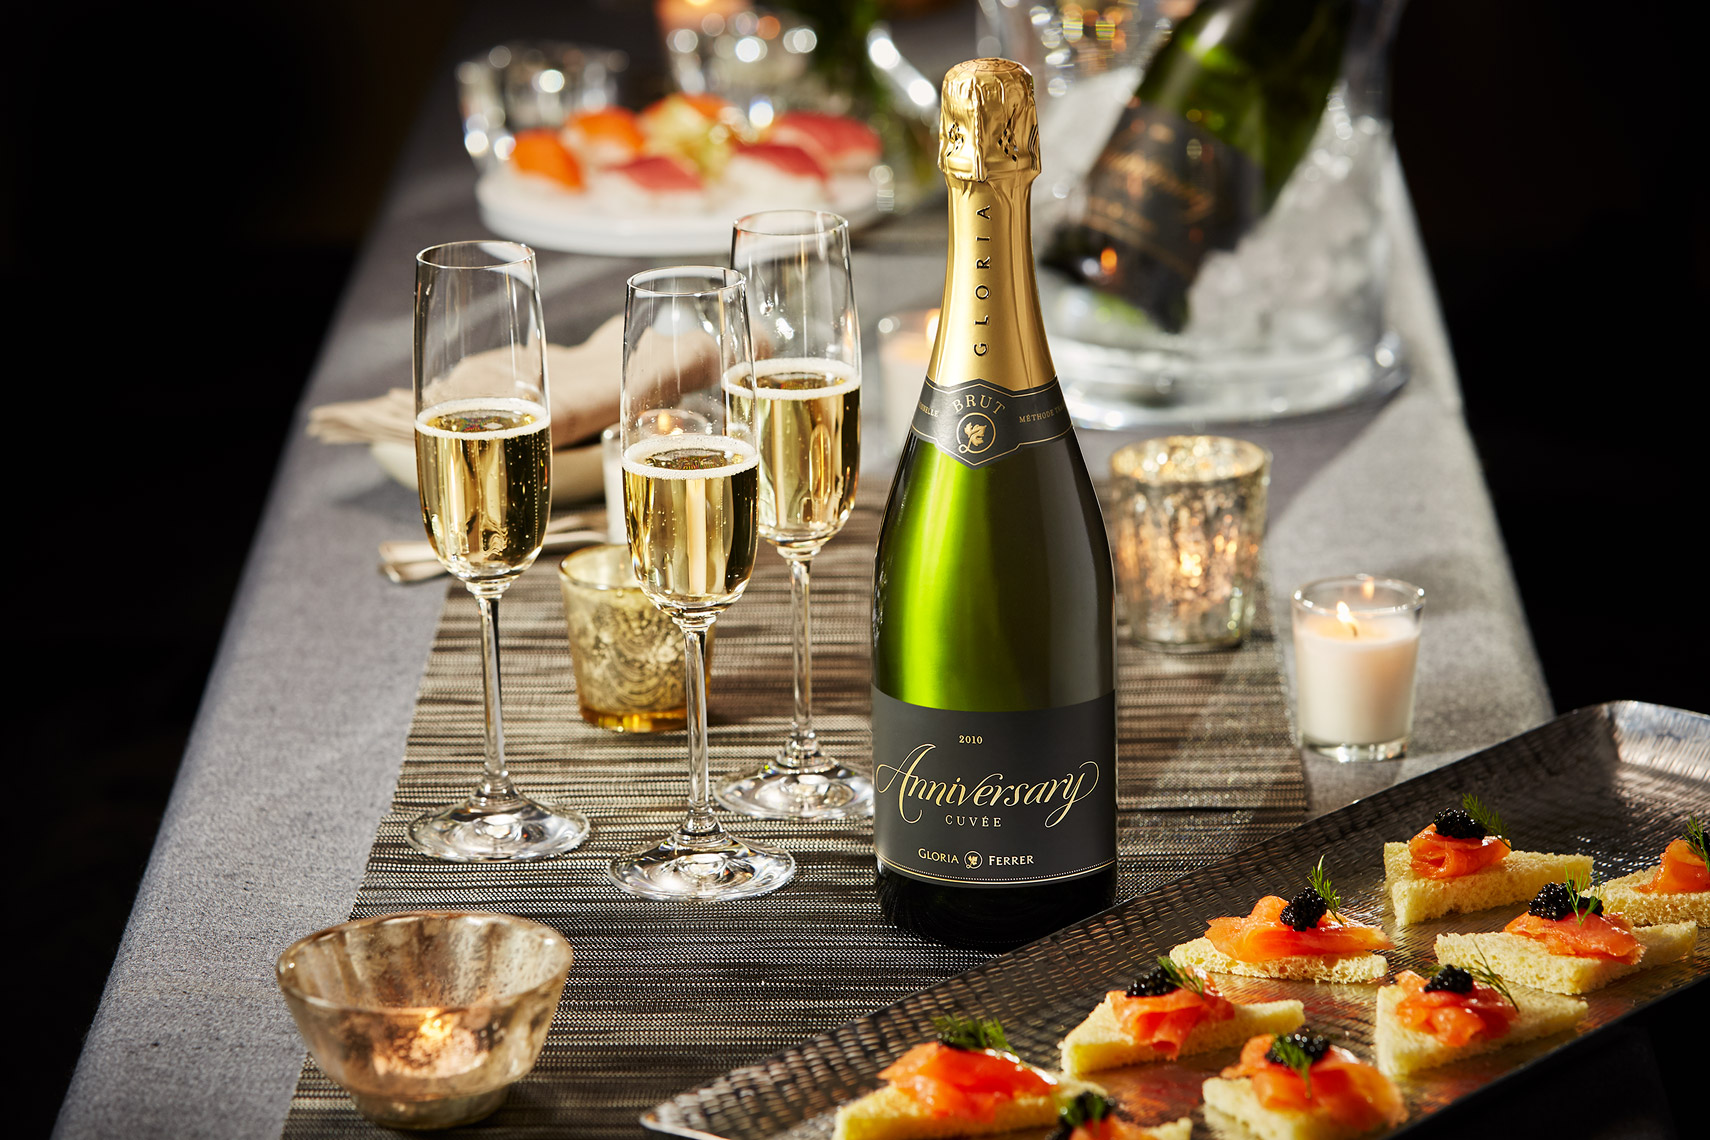 AlanCampbellPhotography, Anniversary Cuvee from Gloria Ferrer